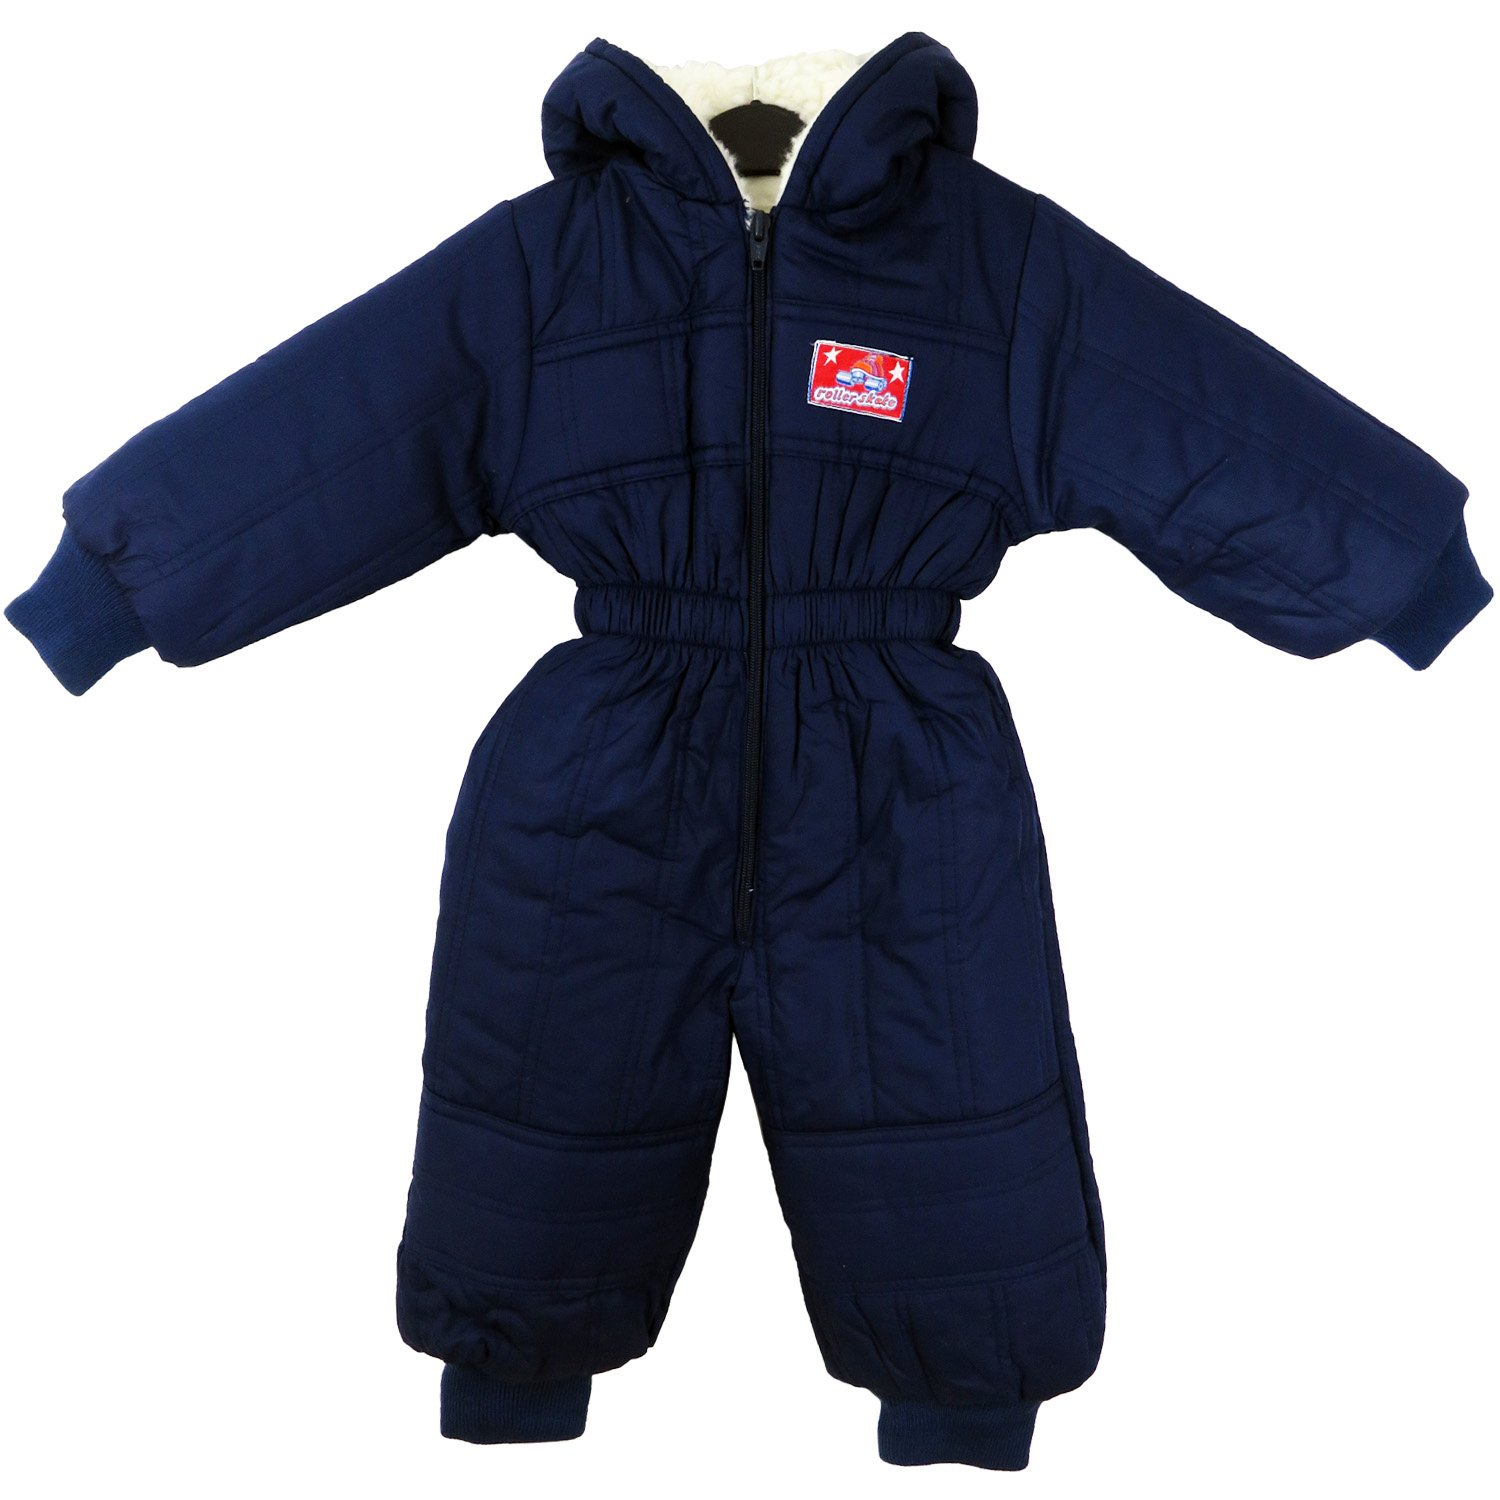 Topzilly Kids Padded All-In-One Waterproof Blue Suit Snowsuit Childs Childrens Boys Girls 3-4 Years